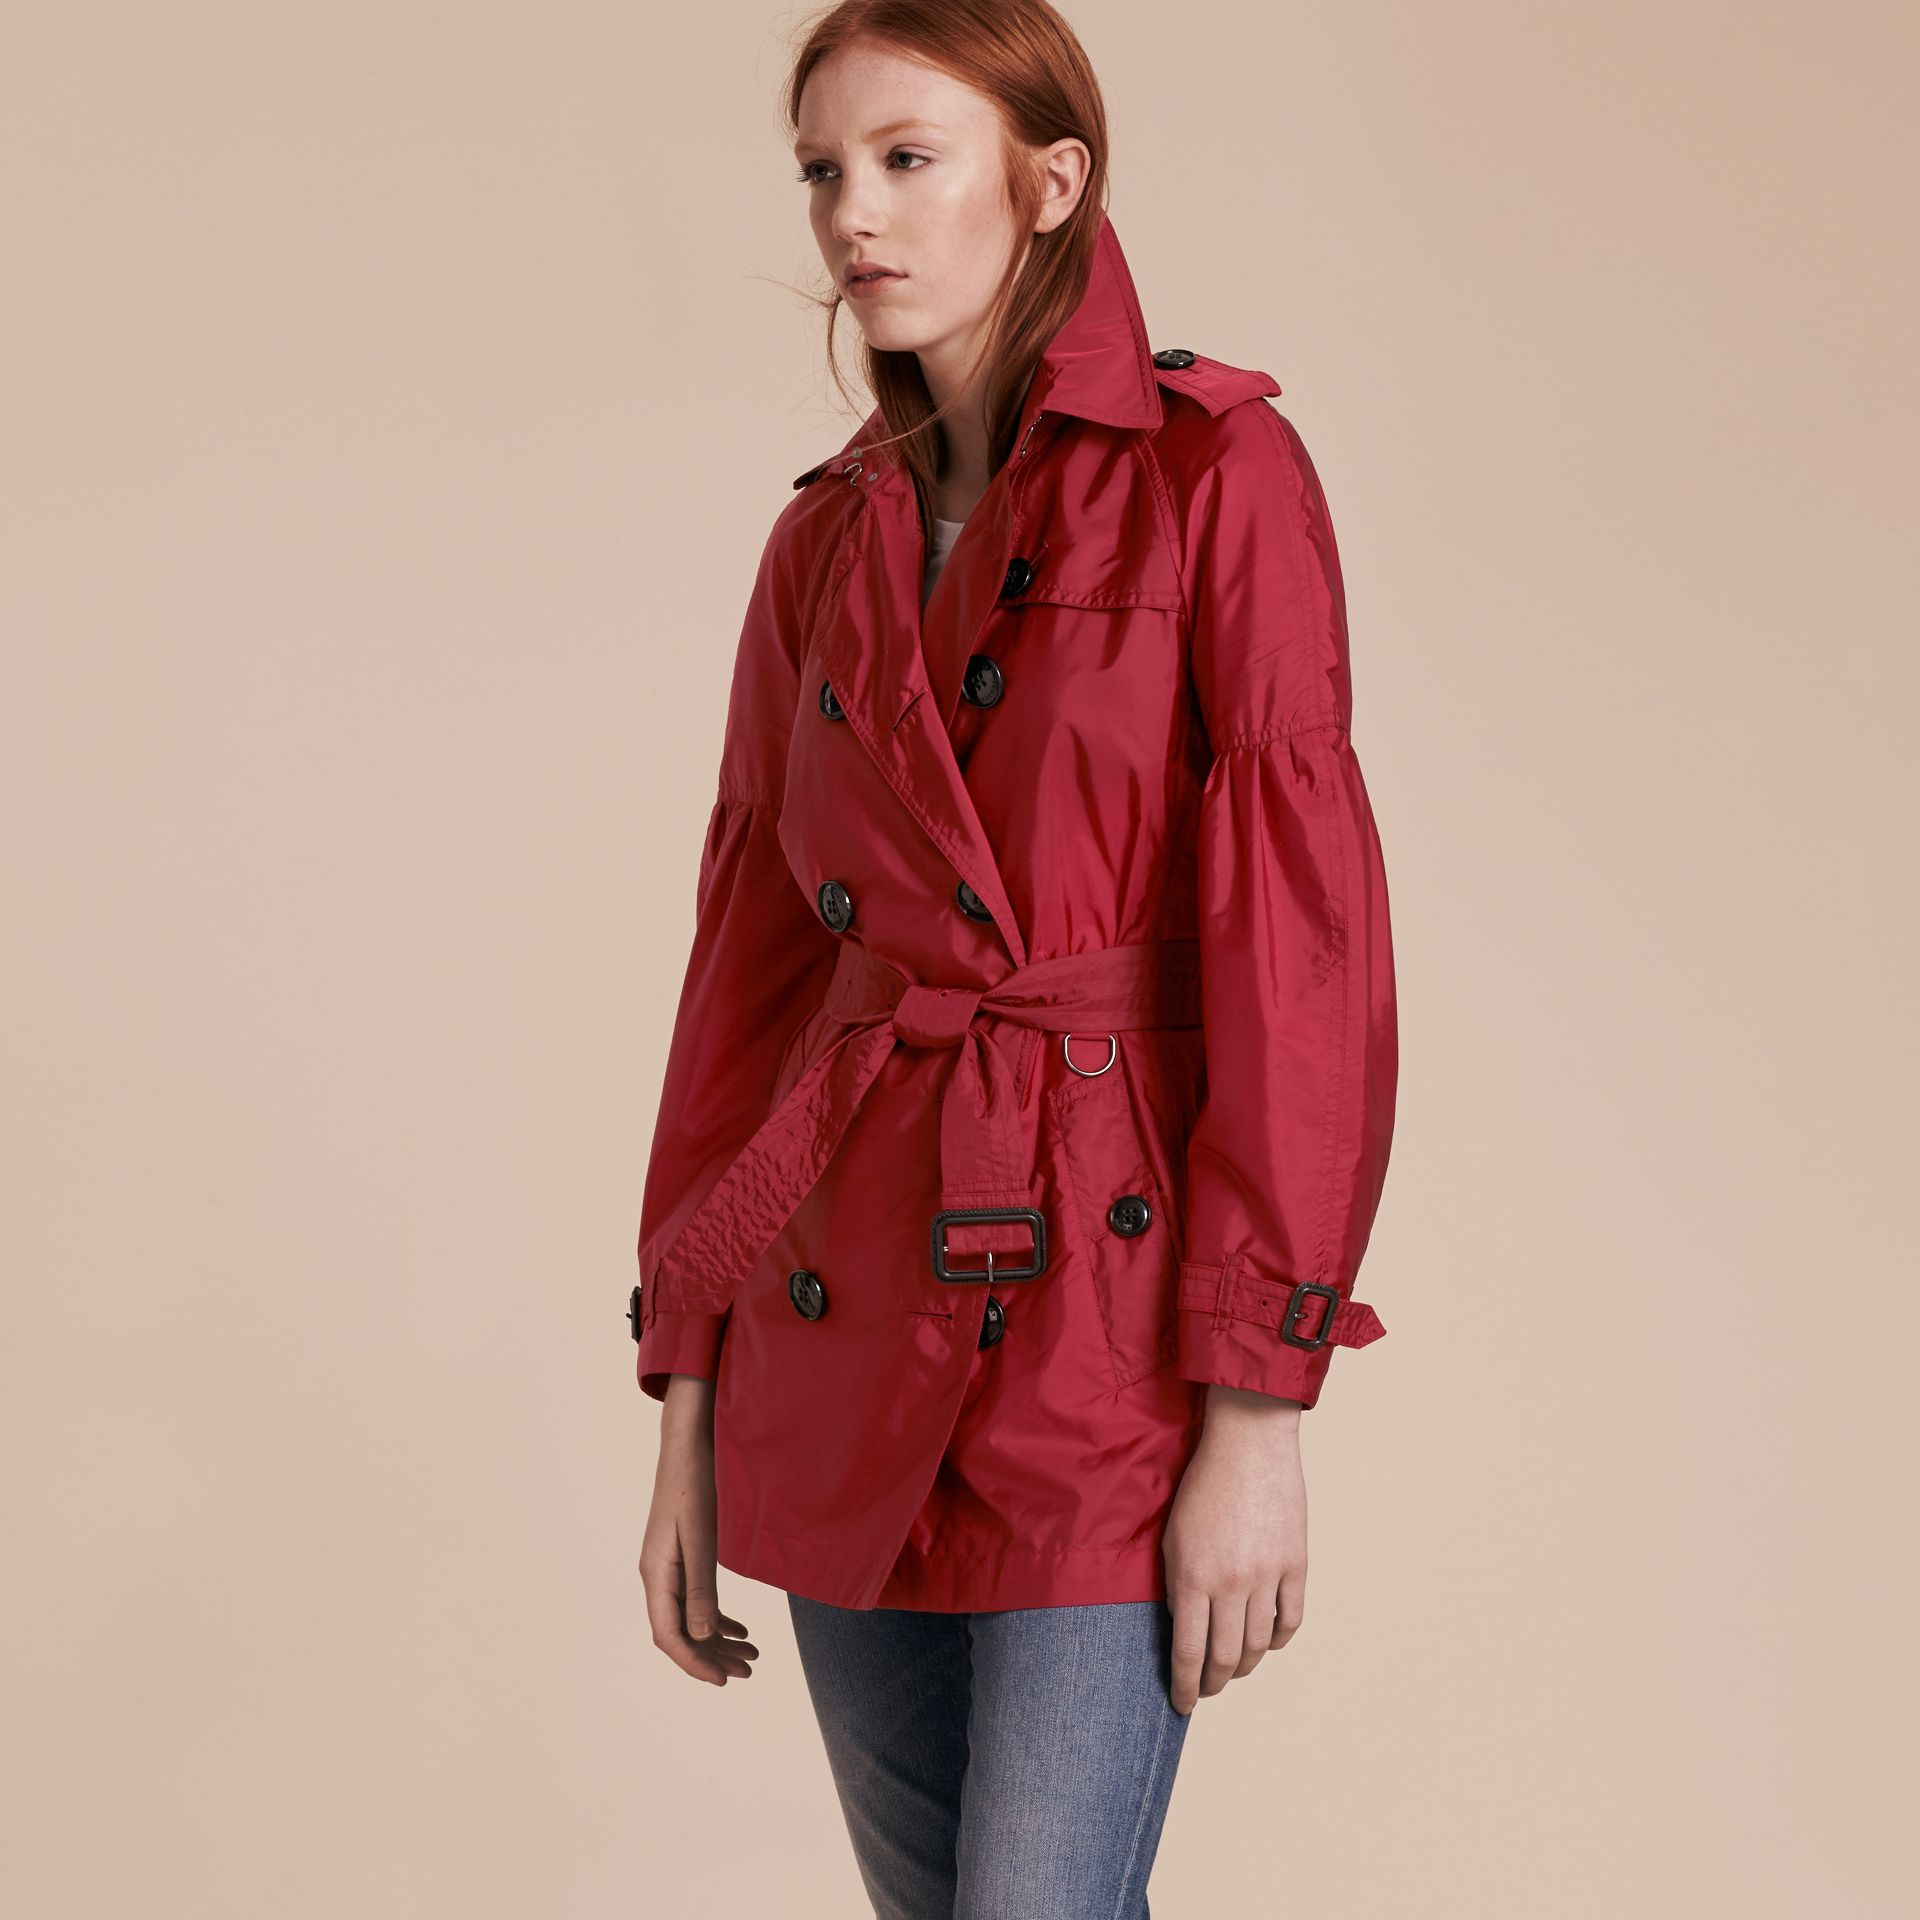 Parade red Packaway Trench Coat with Puff Sleeves - gallery image 1